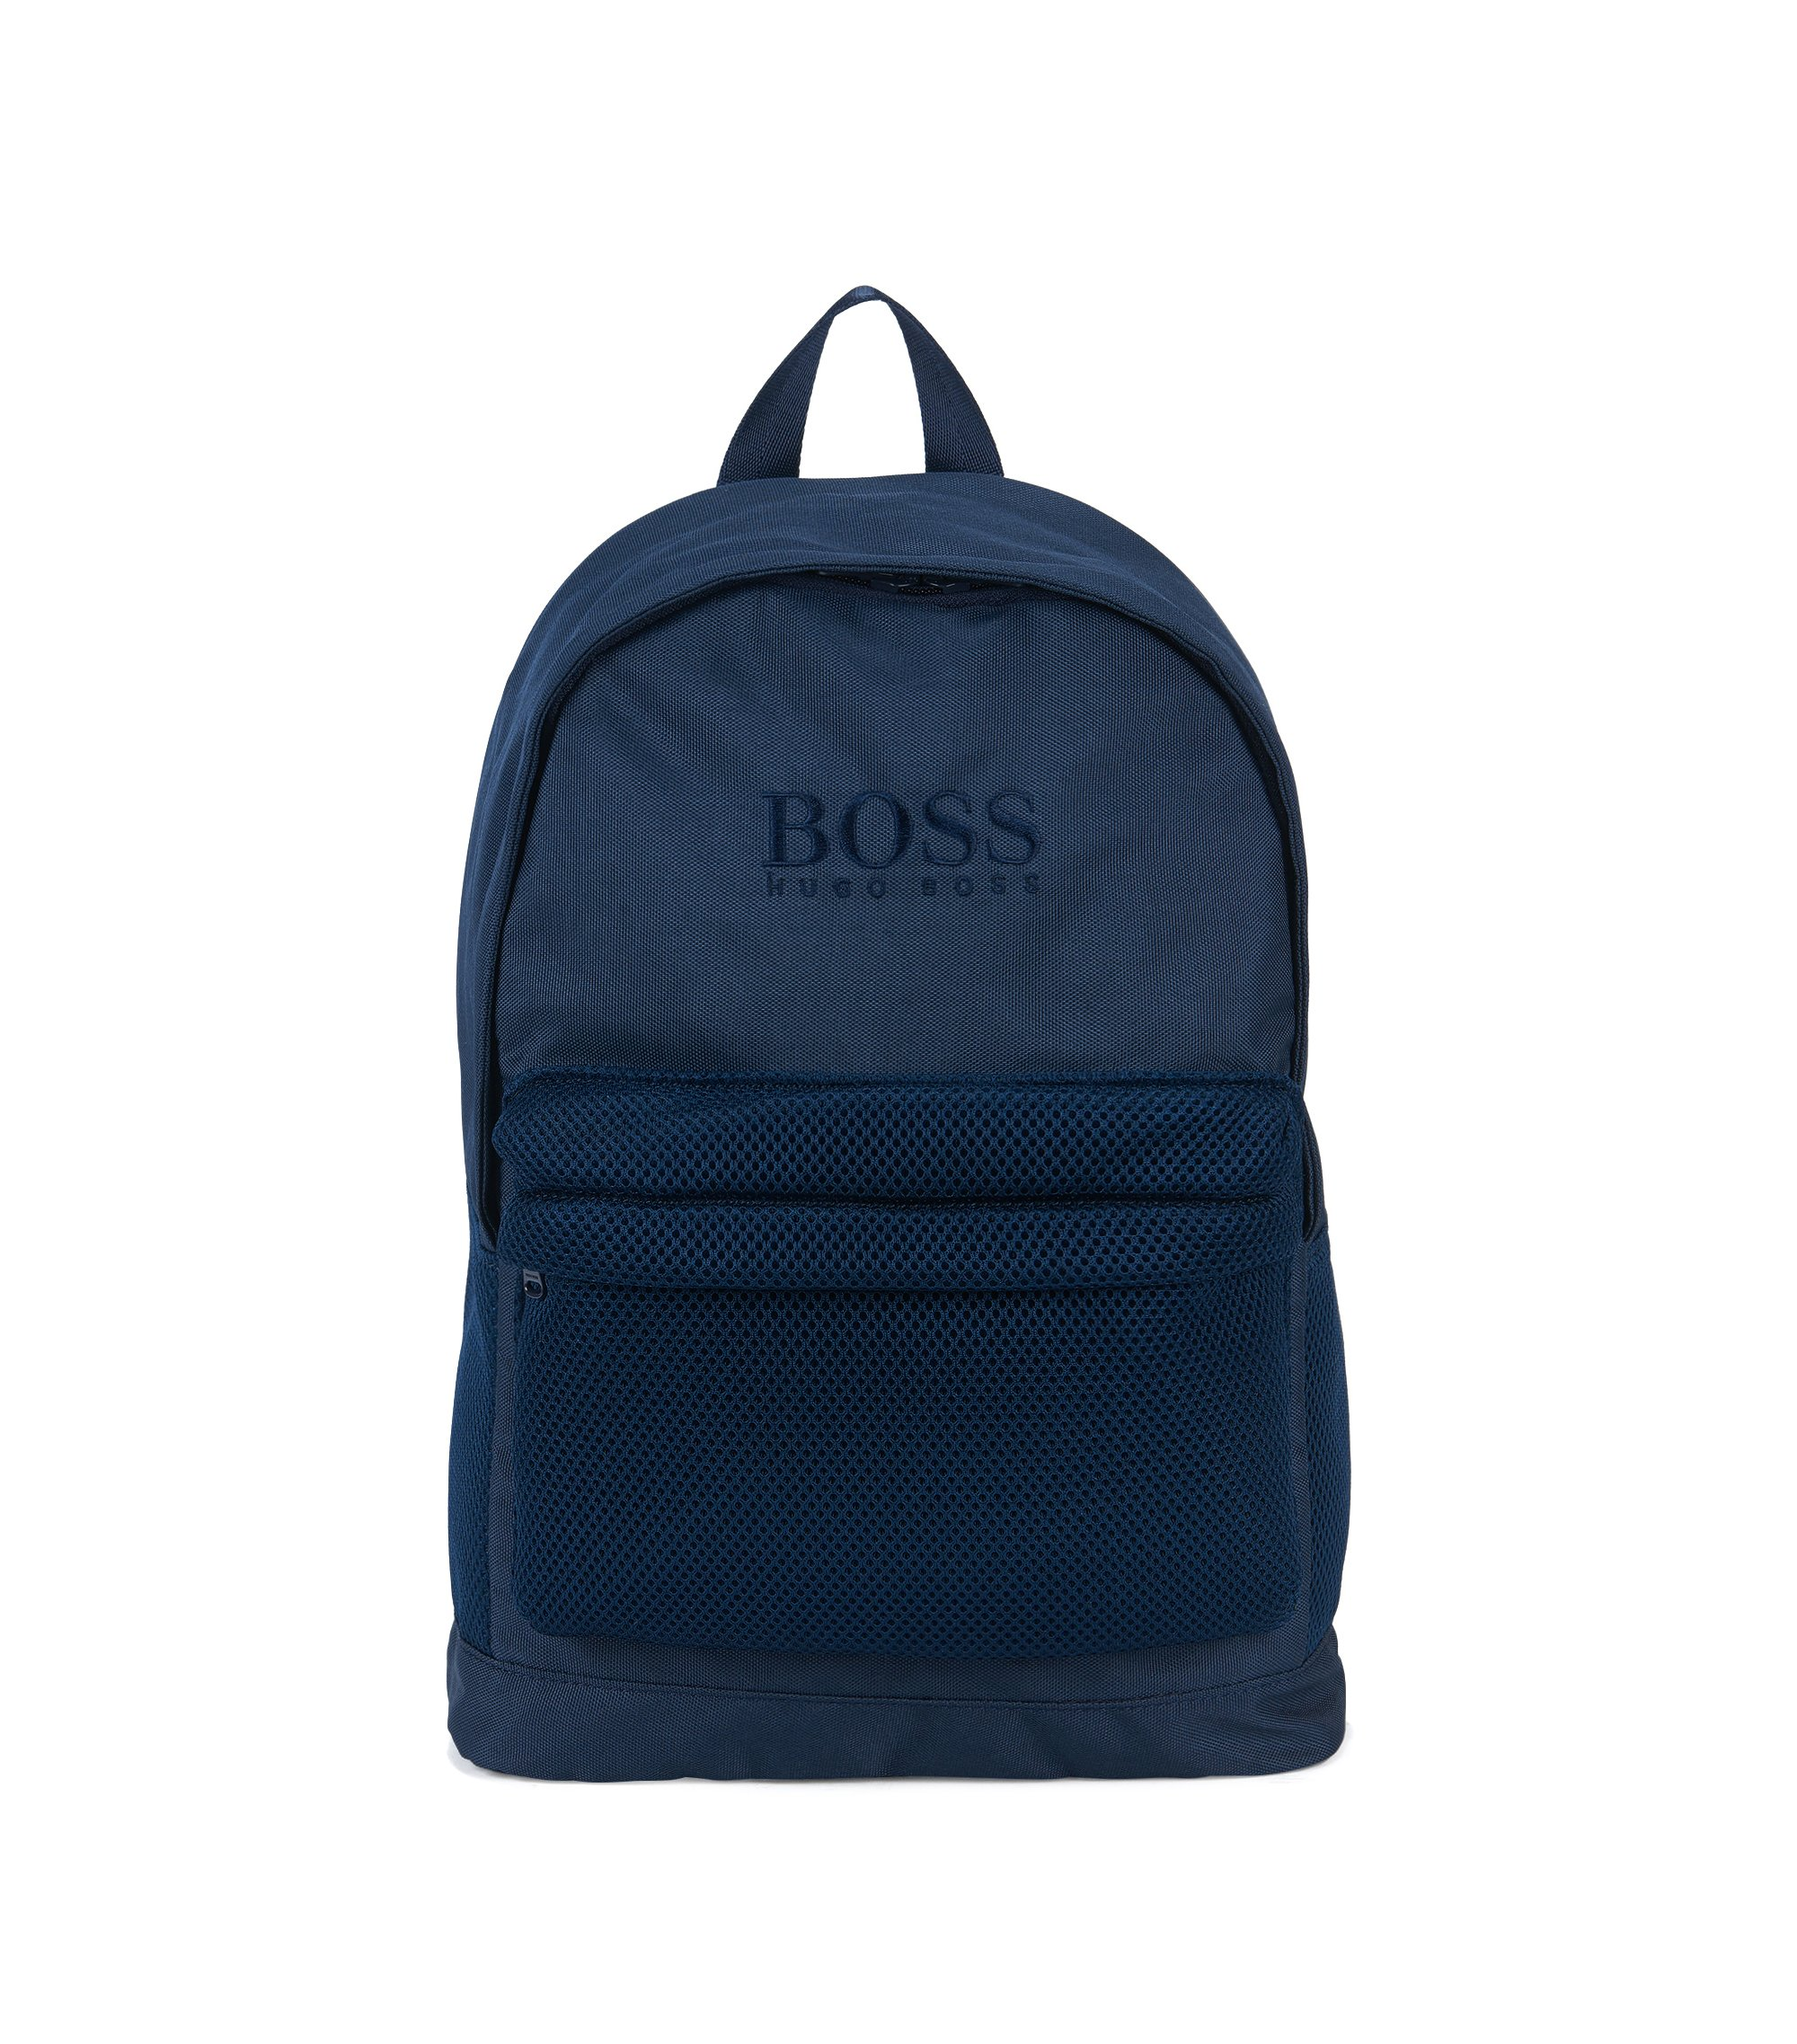 Kids' rucksack in material blend with perforated sections, Dark Blue